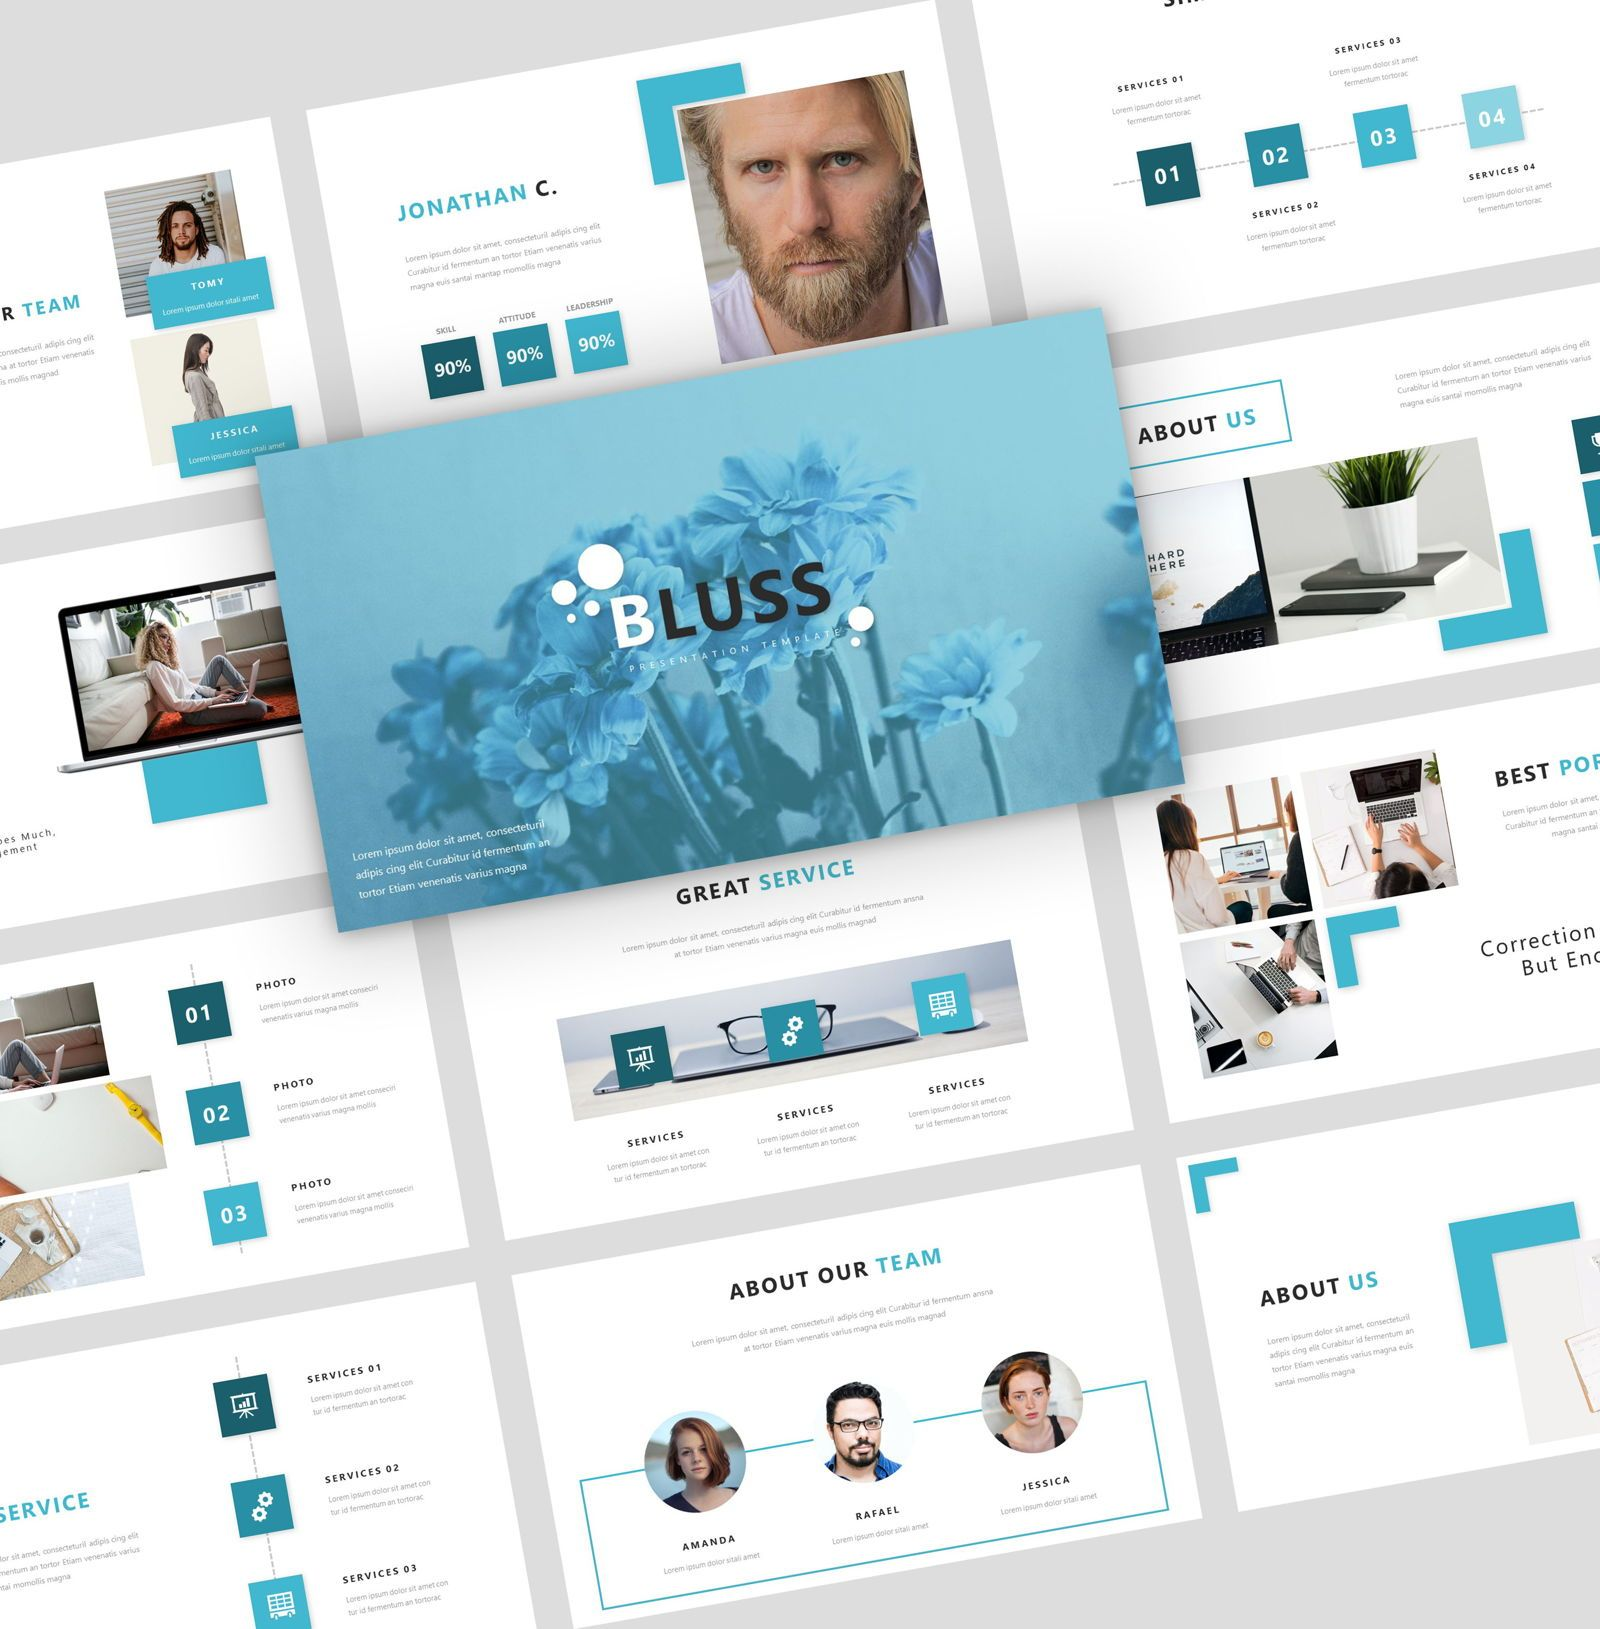 Bluss - PowerPoint Presentation Template, 08069, Presentation Templates — PoweredTemplate.com